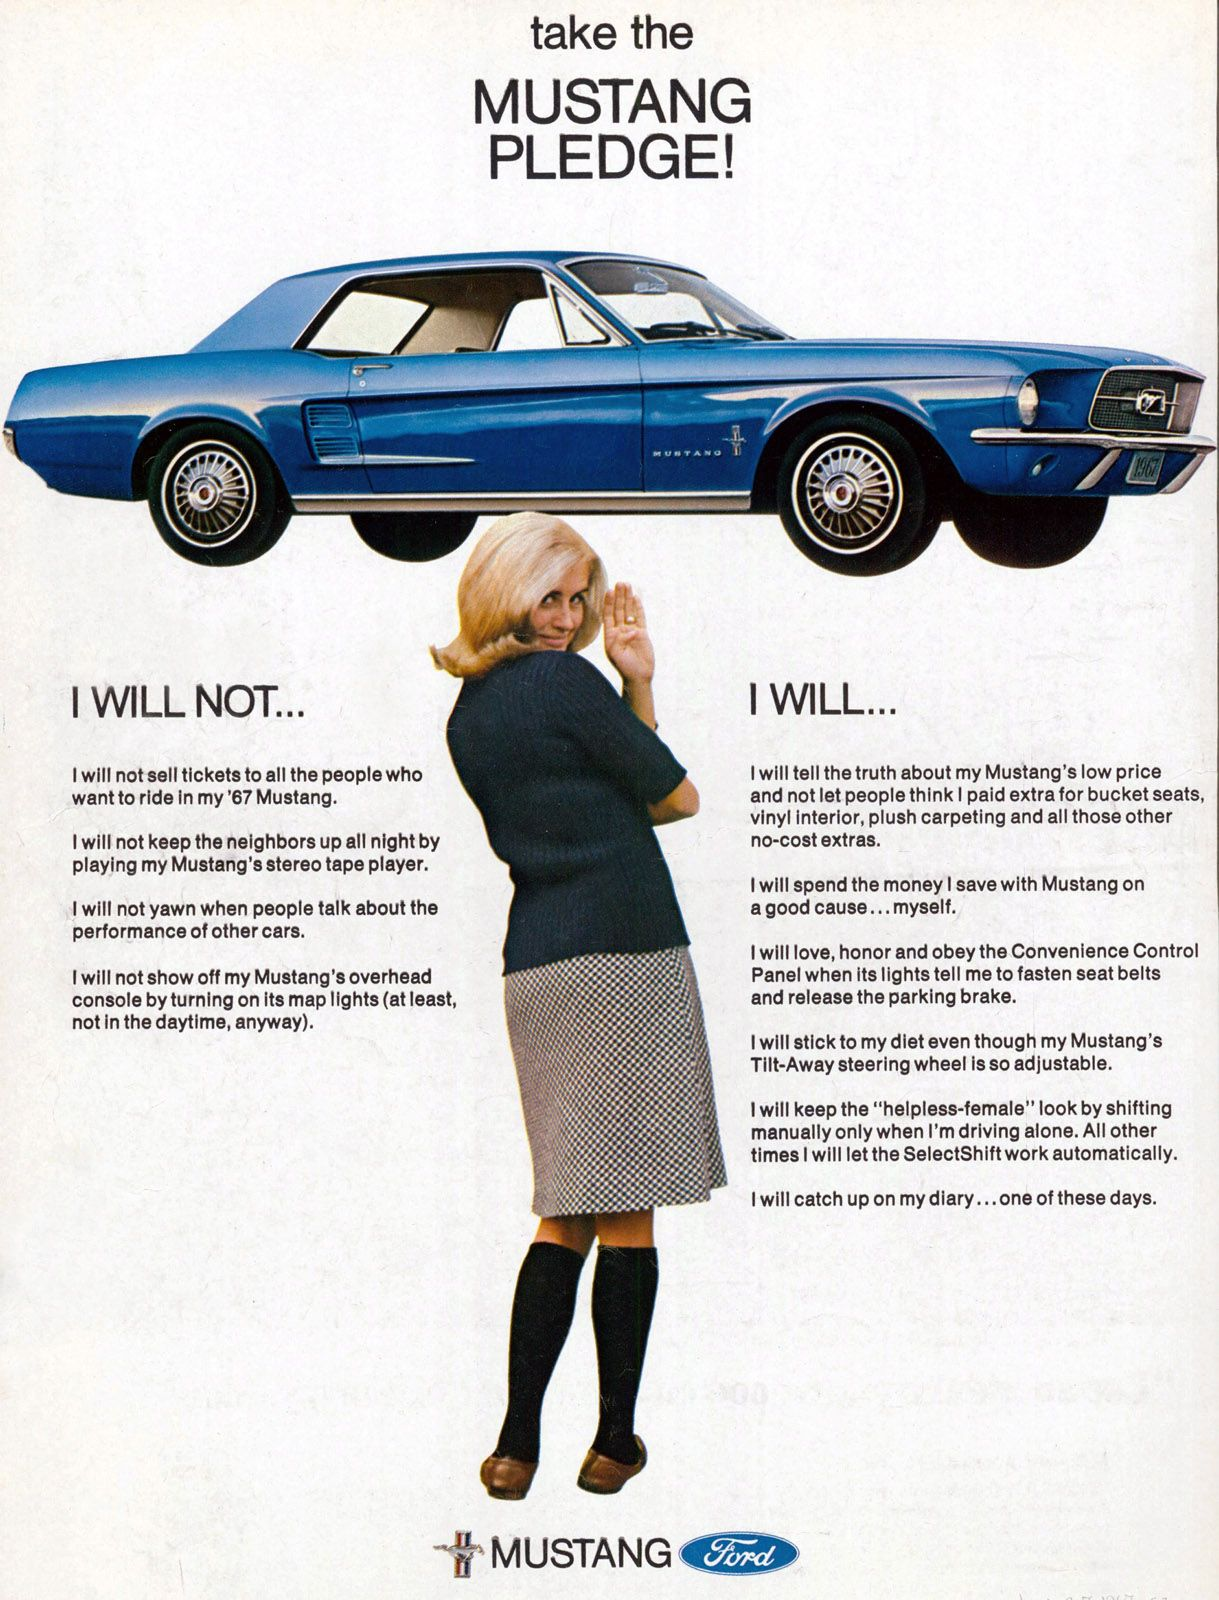 old mustang advertisement the mustang pledge throwbacks pinterest mustang ford mustang. Black Bedroom Furniture Sets. Home Design Ideas